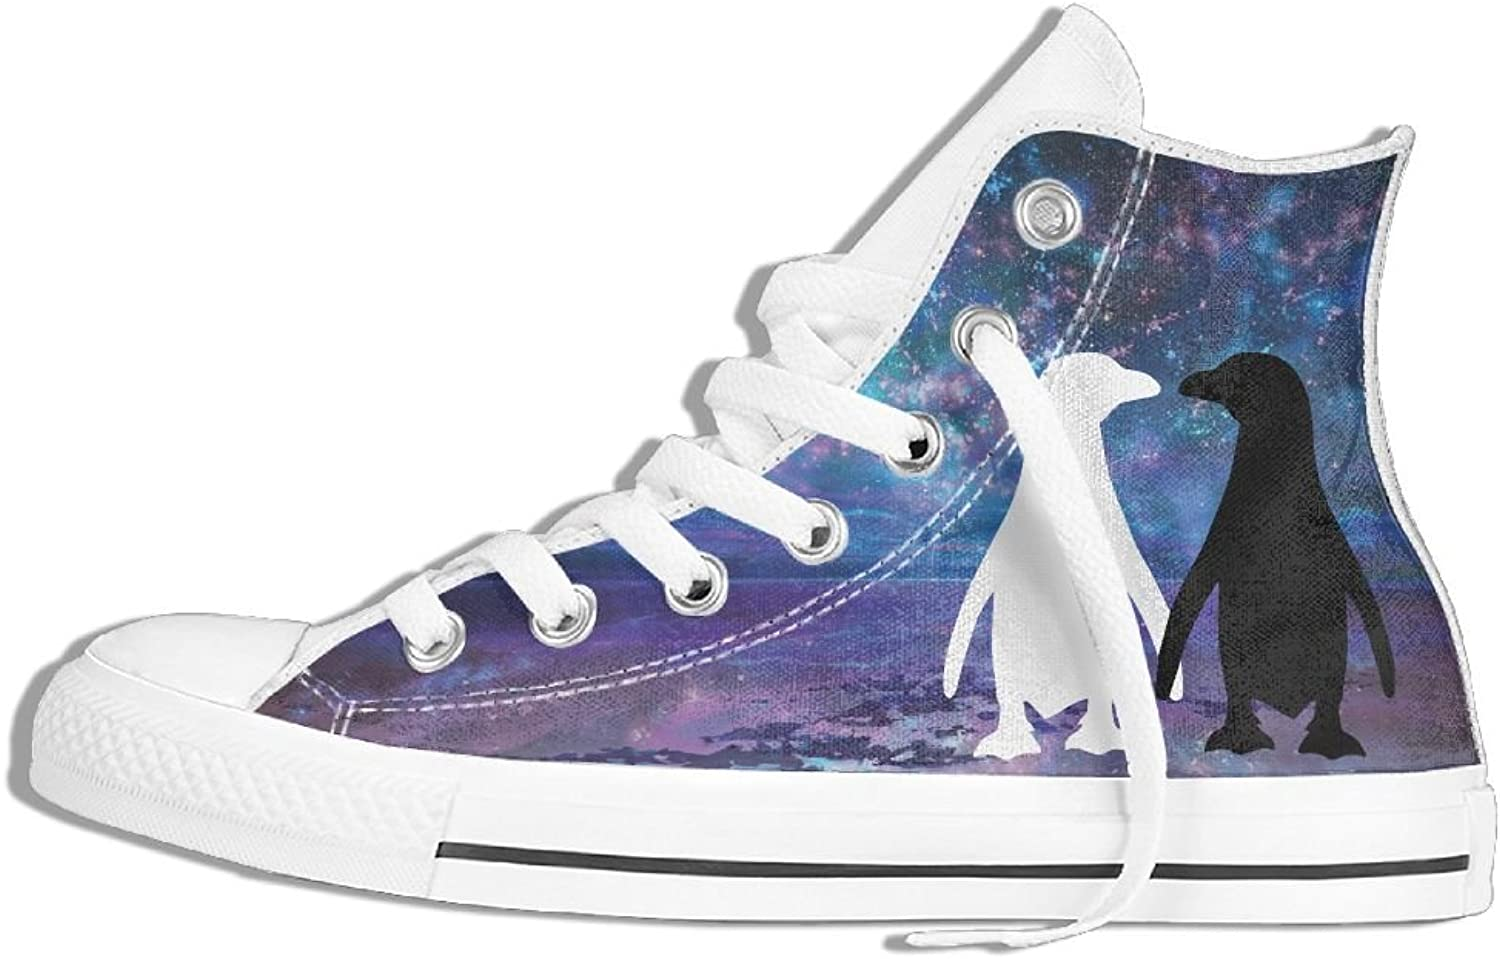 Penguin Cute Couple High Top Classic Casual Canvas Fashion shoes Sneakers For Women & Men